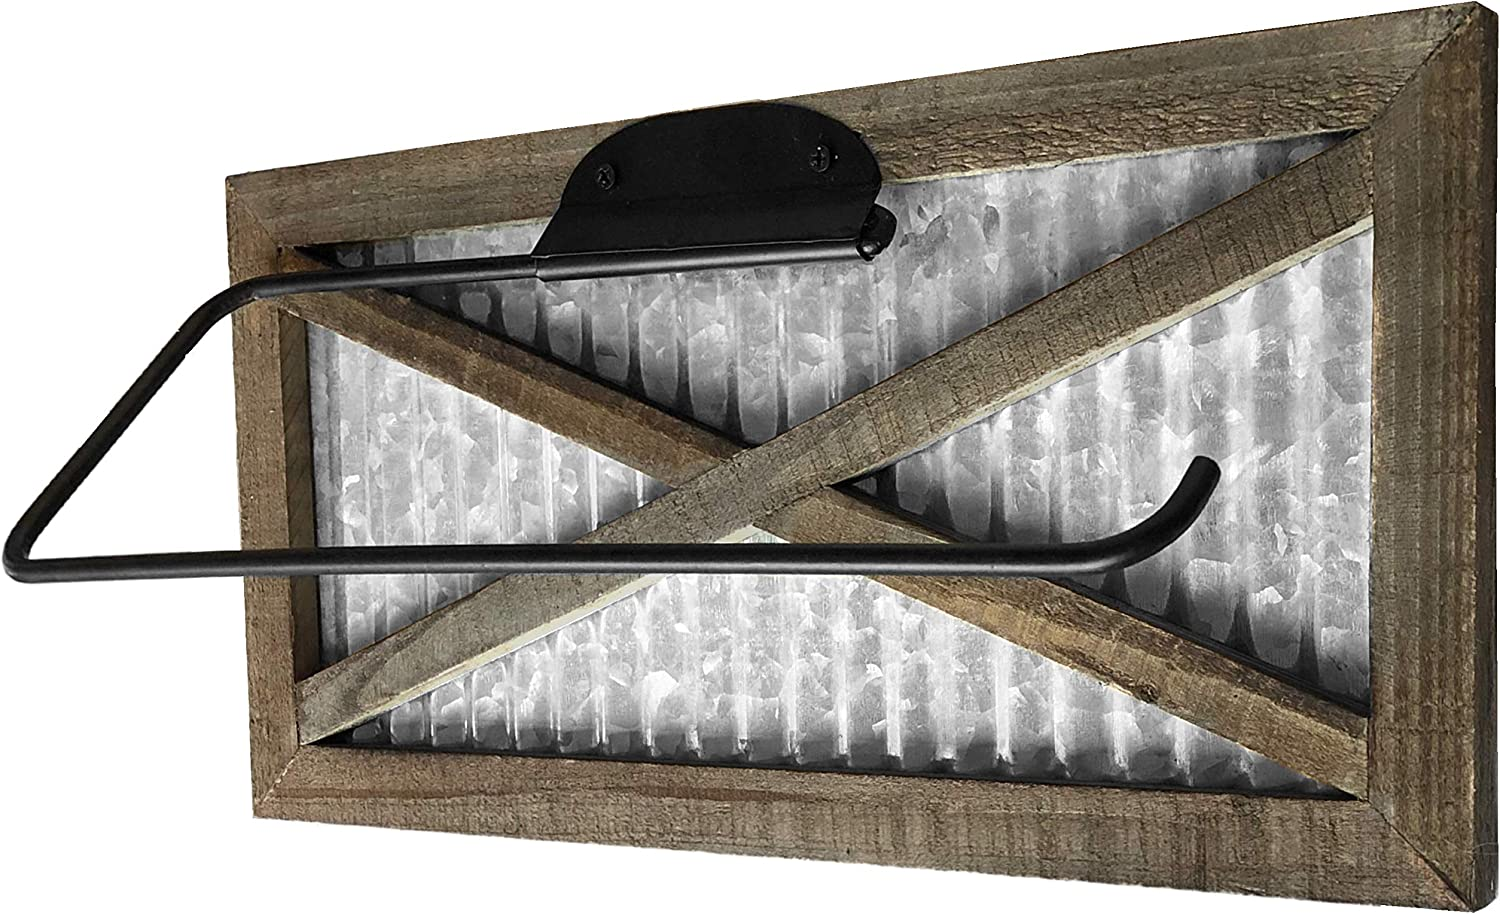 Autumn Alley Max 83% OFF Rustic Barn Door Paper Atlanta Mall Home - Country Holder Towel